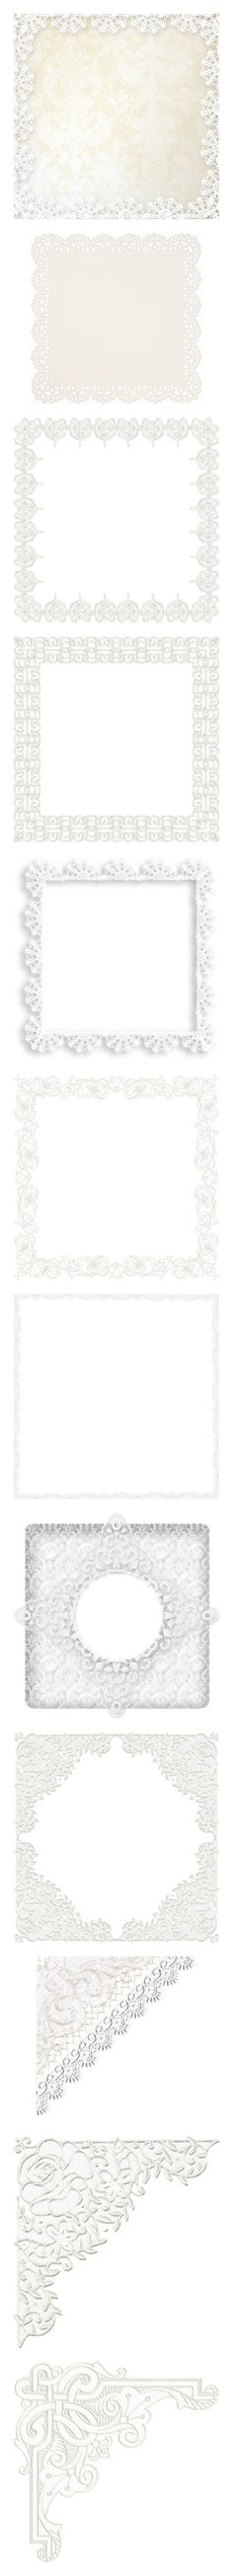 """Lace (1)"" by maneevanit ❤ liked on Polyvore featuring backgrounds, frames, borders, effects, wallpaper, pattern, picture frame, fillers, lace and picture frames"